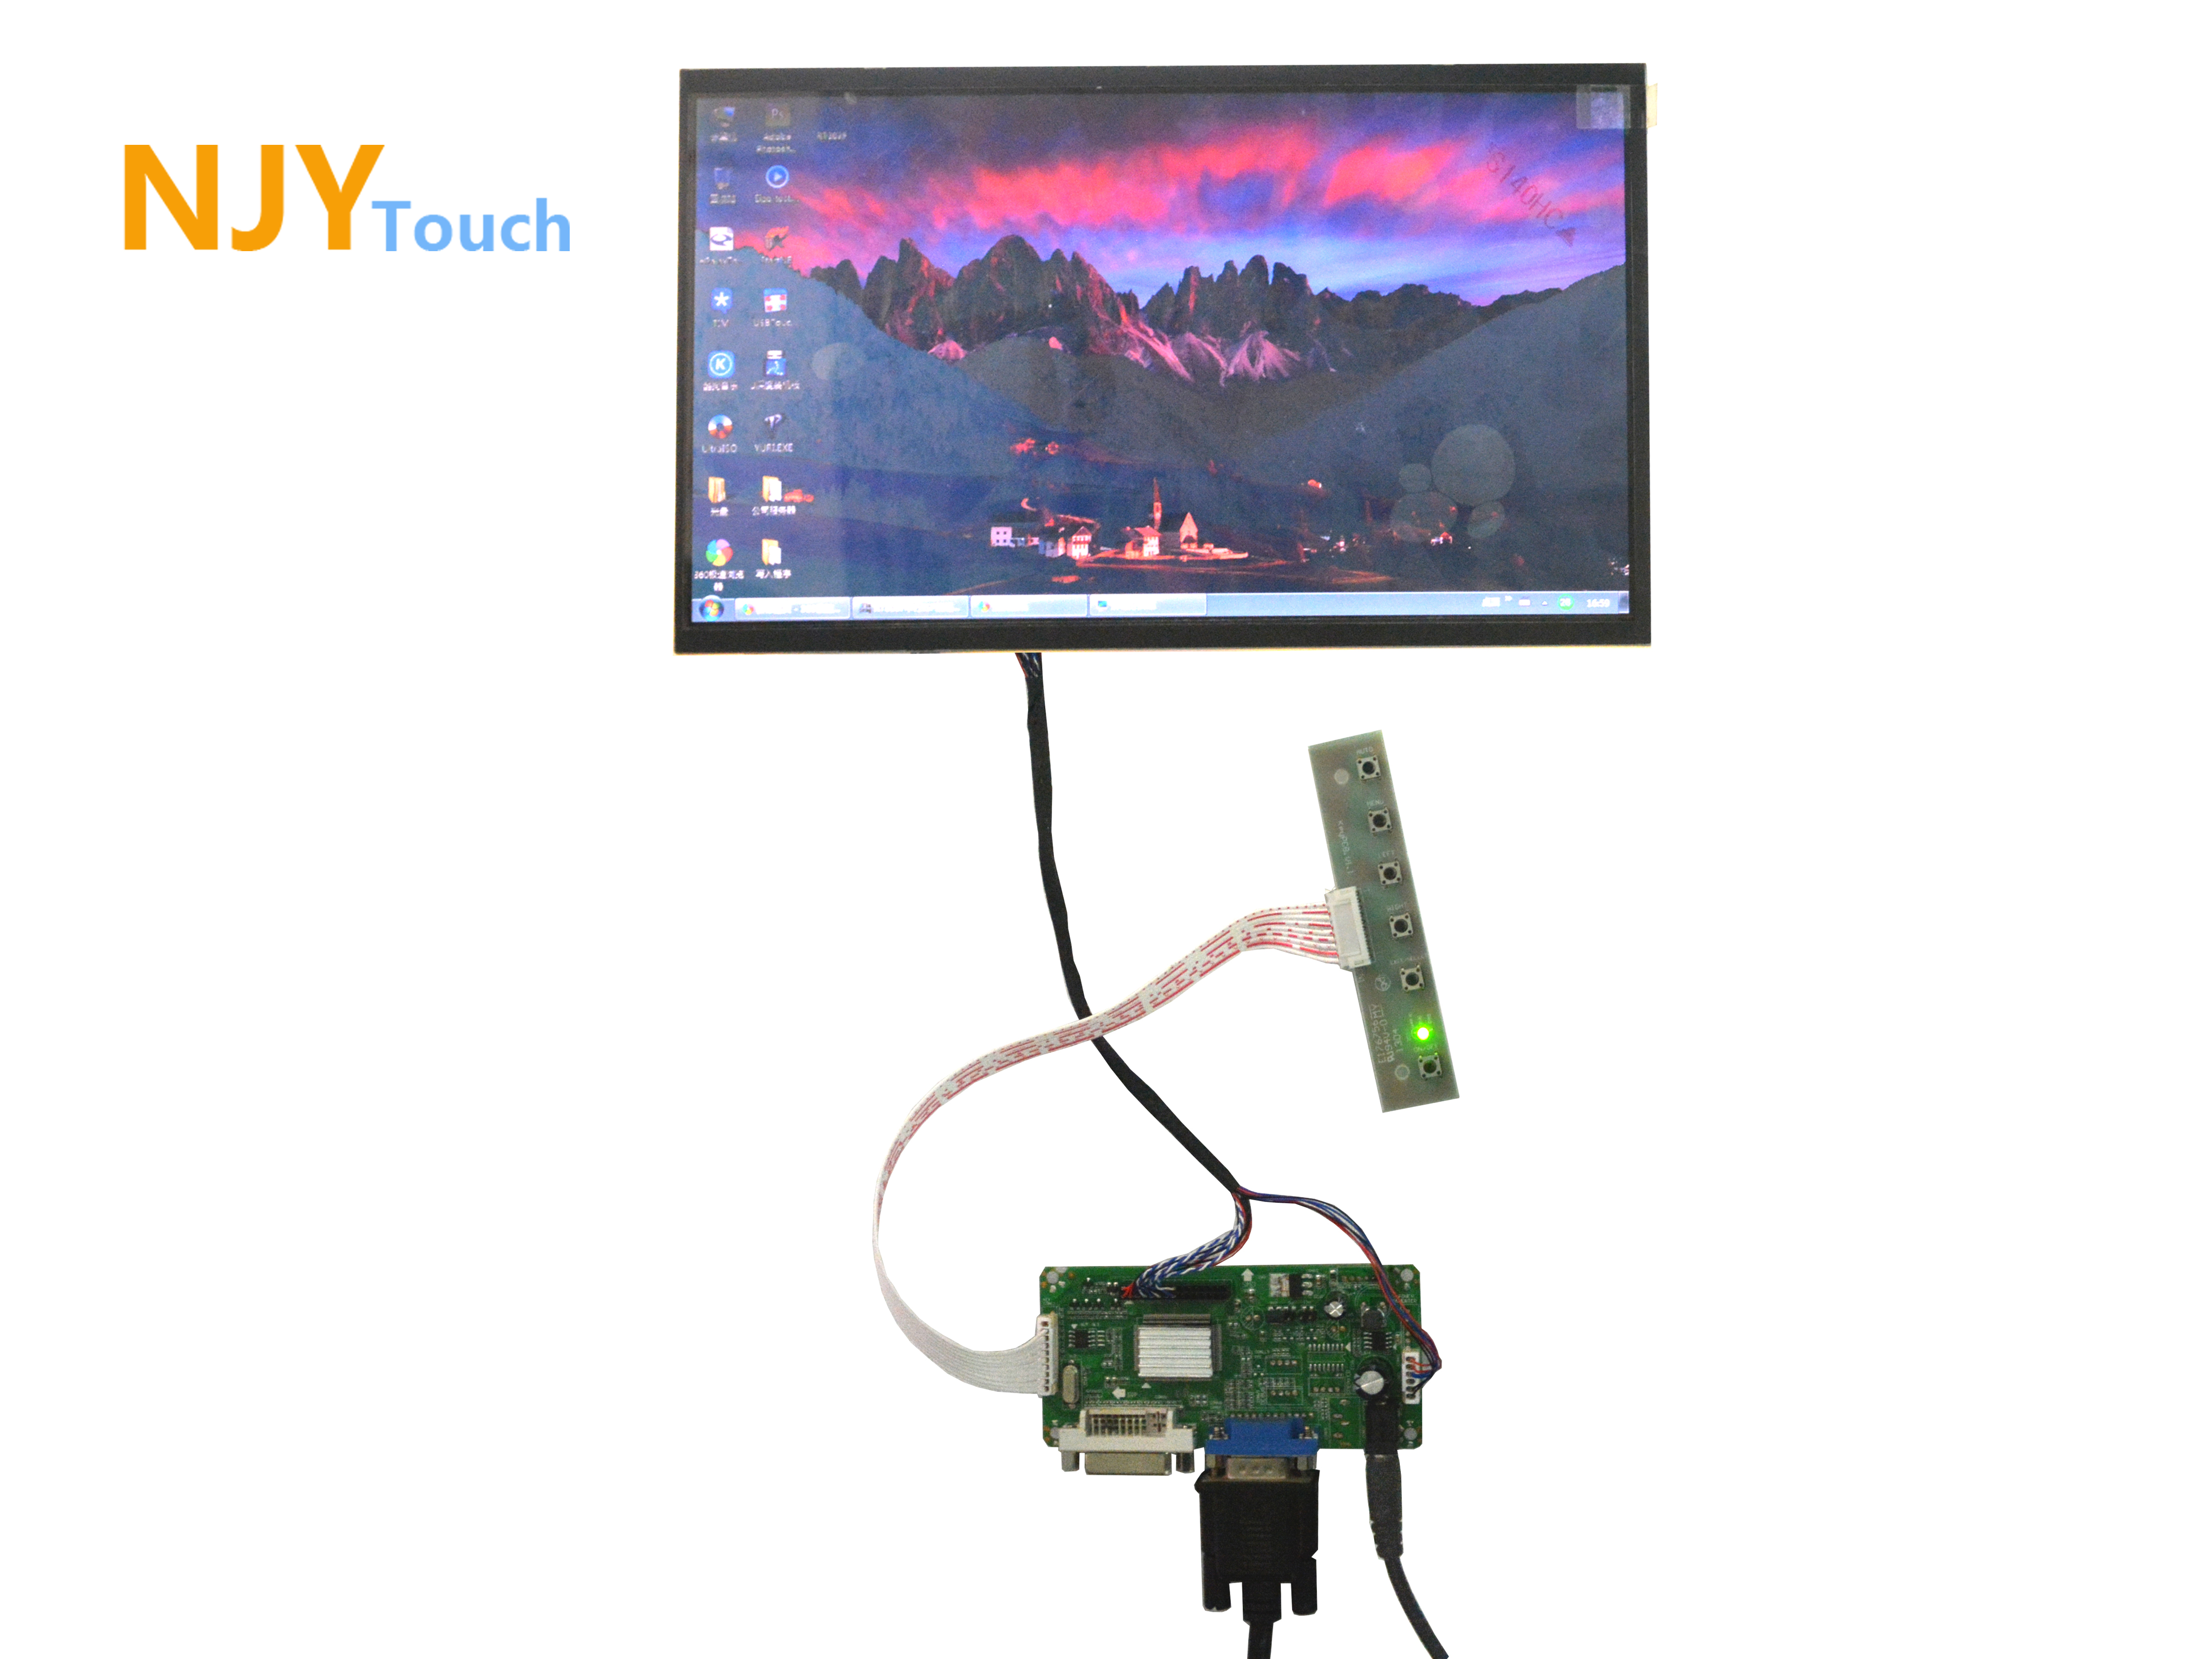 NJYTouch LM.R61 DVI VGA LVDS LCD Controller Board With 11.6inch B116XW02 1366x768 40Pin LED Screen